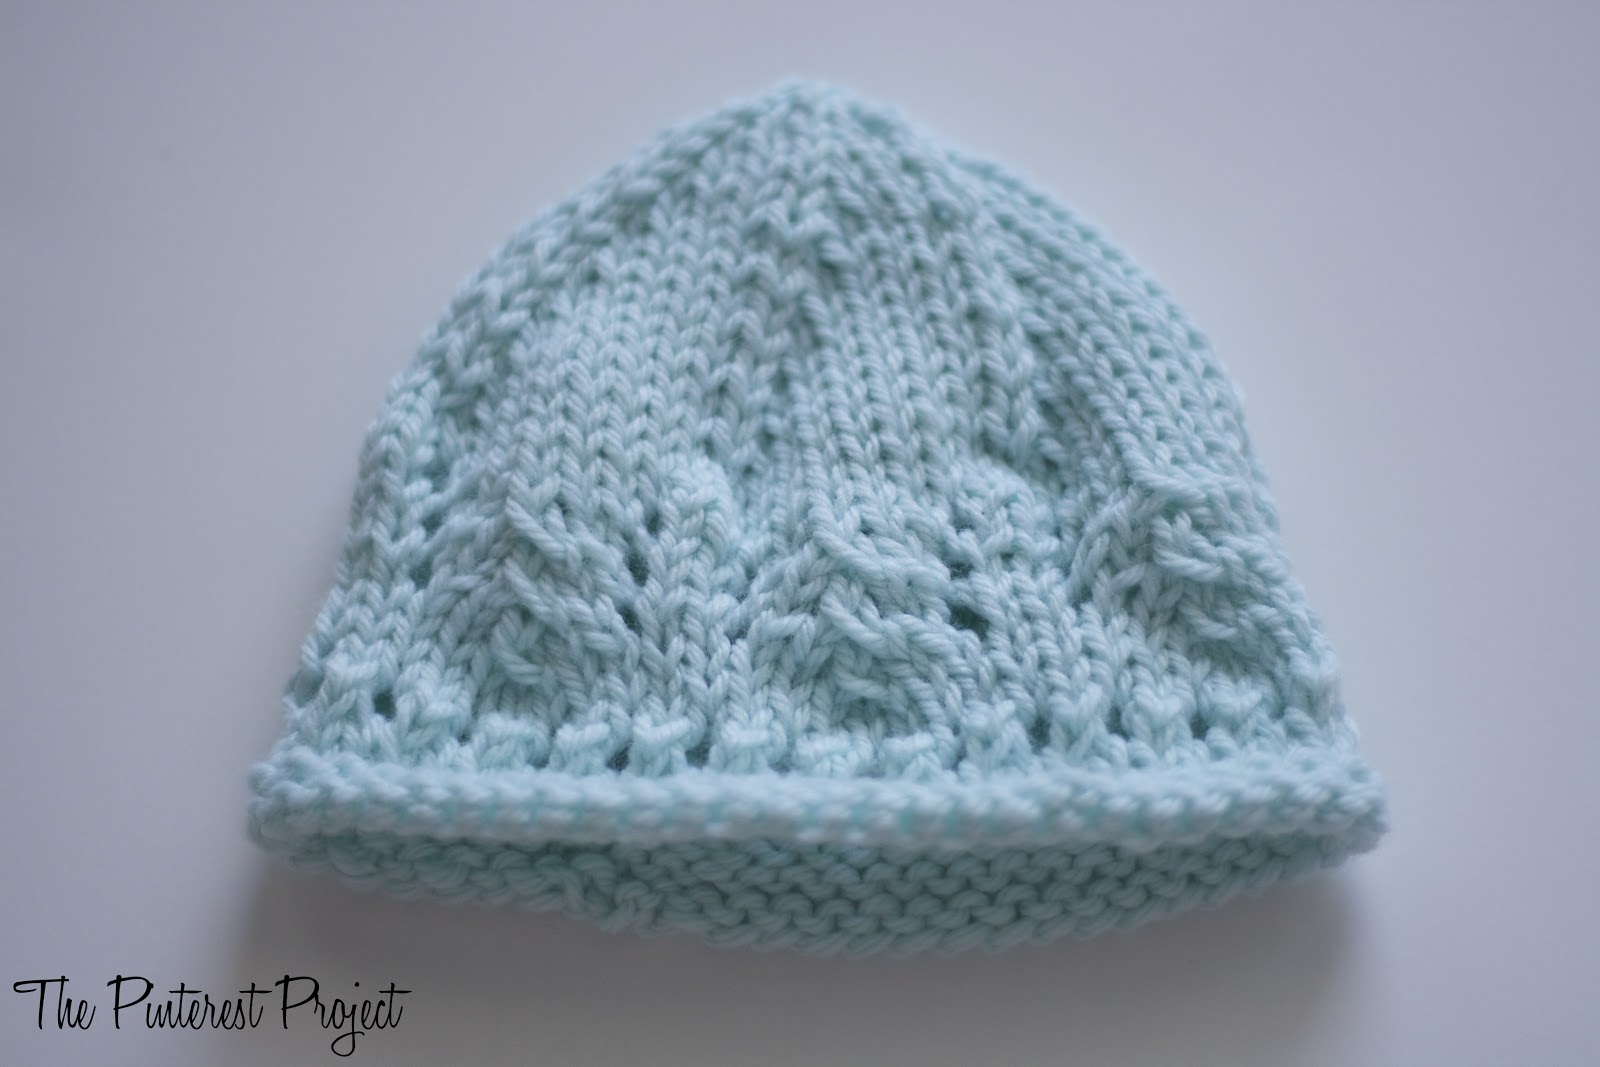 Knitting Patterns Baby Pinterest : Hat knitting patterns pinterest crafts